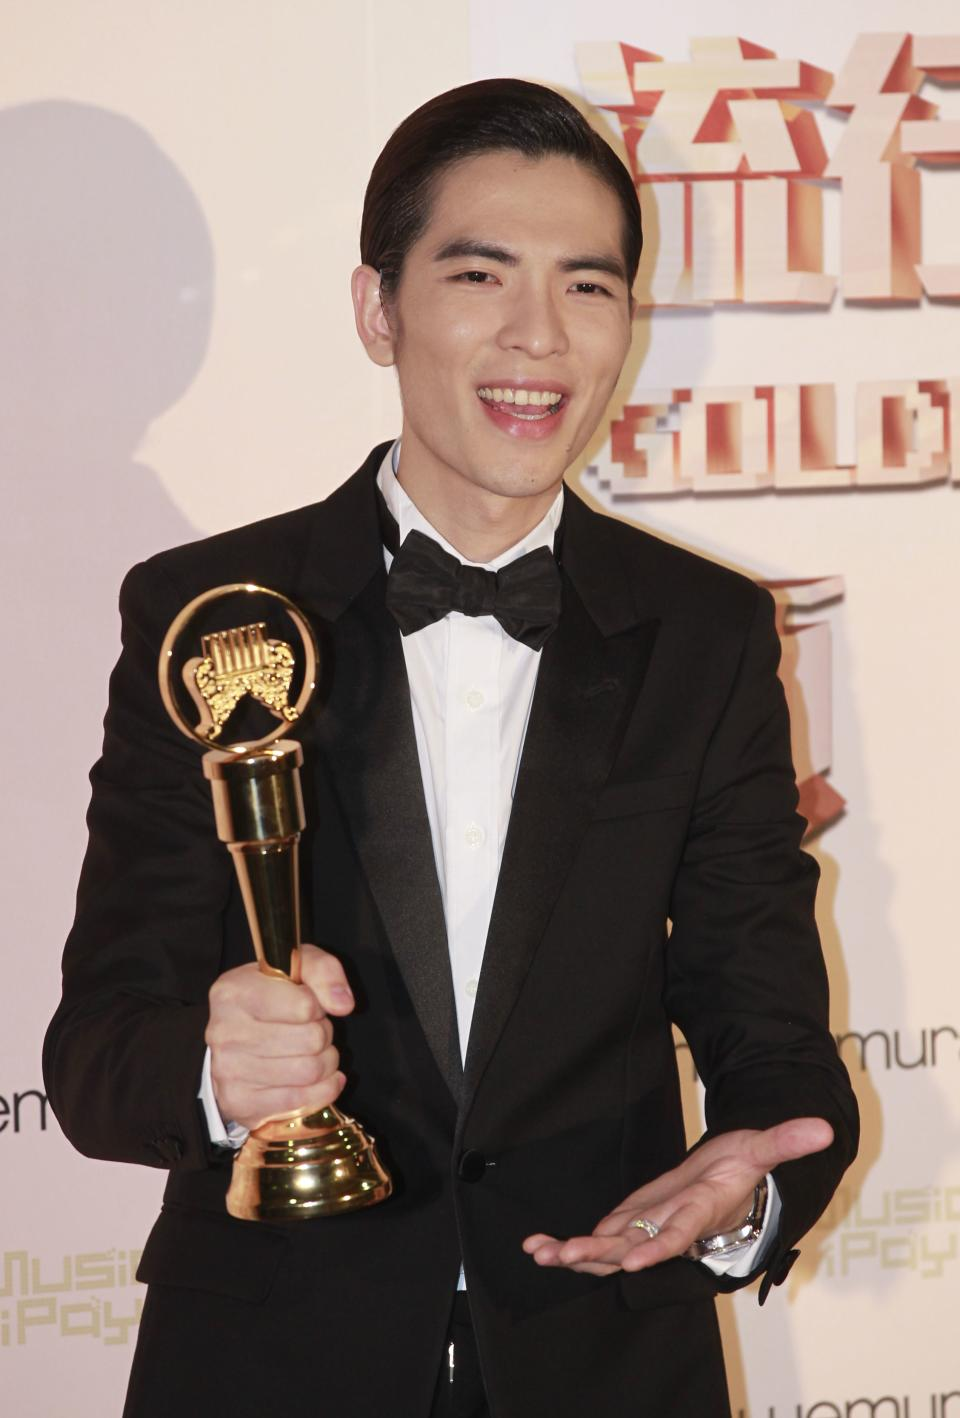 Taiwanese singer Jam Hsiao holds his award for Best Male Vocal Performer at the 24th Golden Melody Awards in Taipei, Taiwan, Saturday, July 6, 2013. The Golden Melody Awards is one of the Chinese-language pop music world's biggest annual events.(AP Photo/Wally Santana)